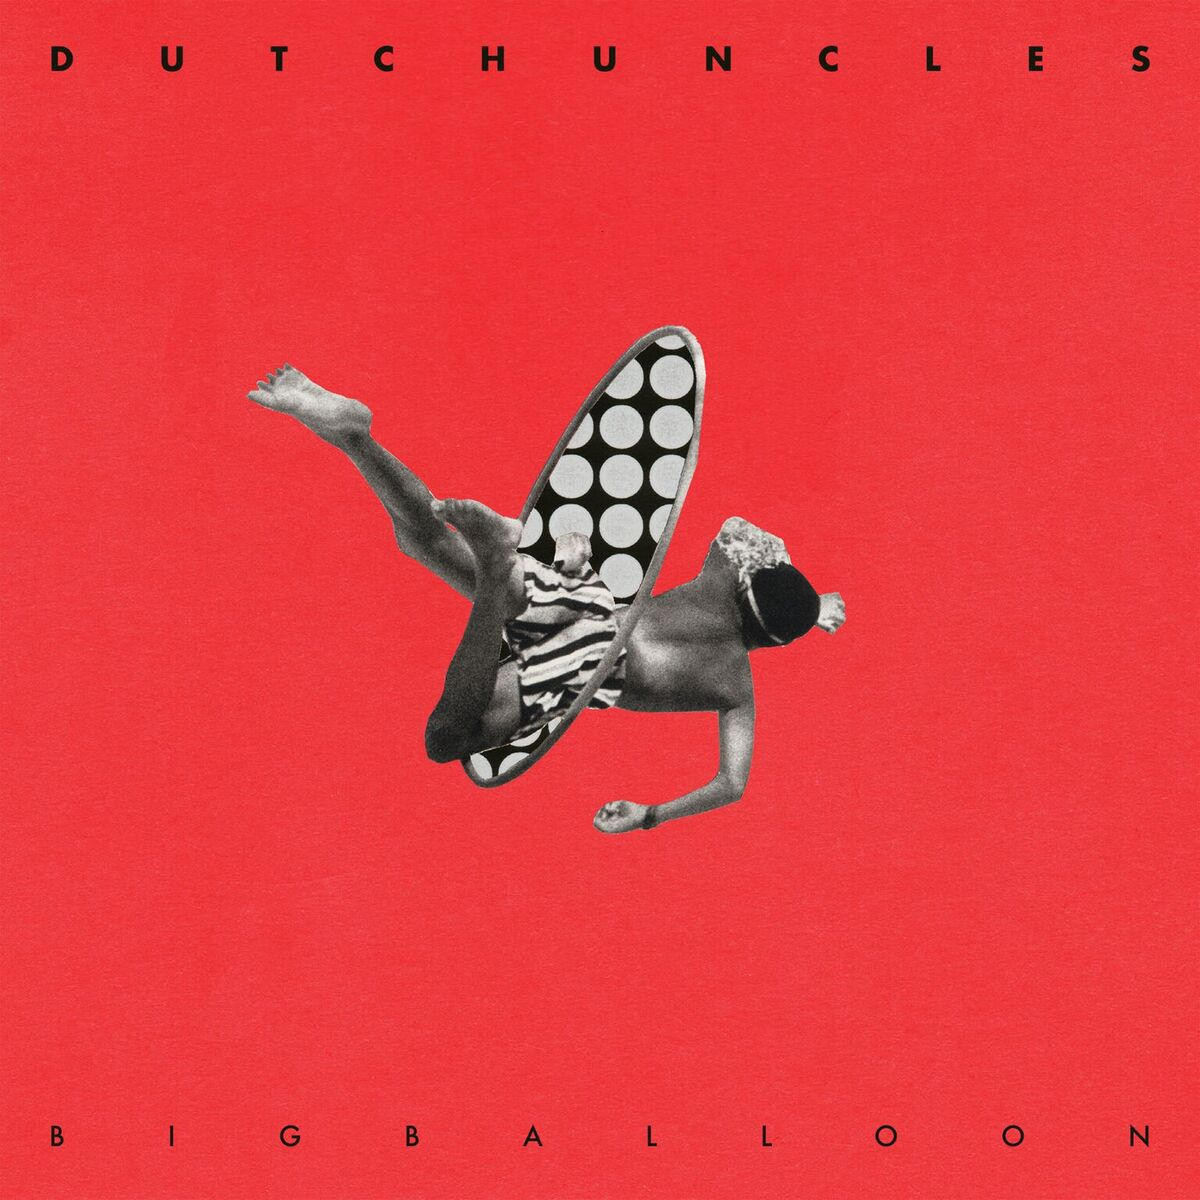 dutch-uncles-big-balloon.jpg